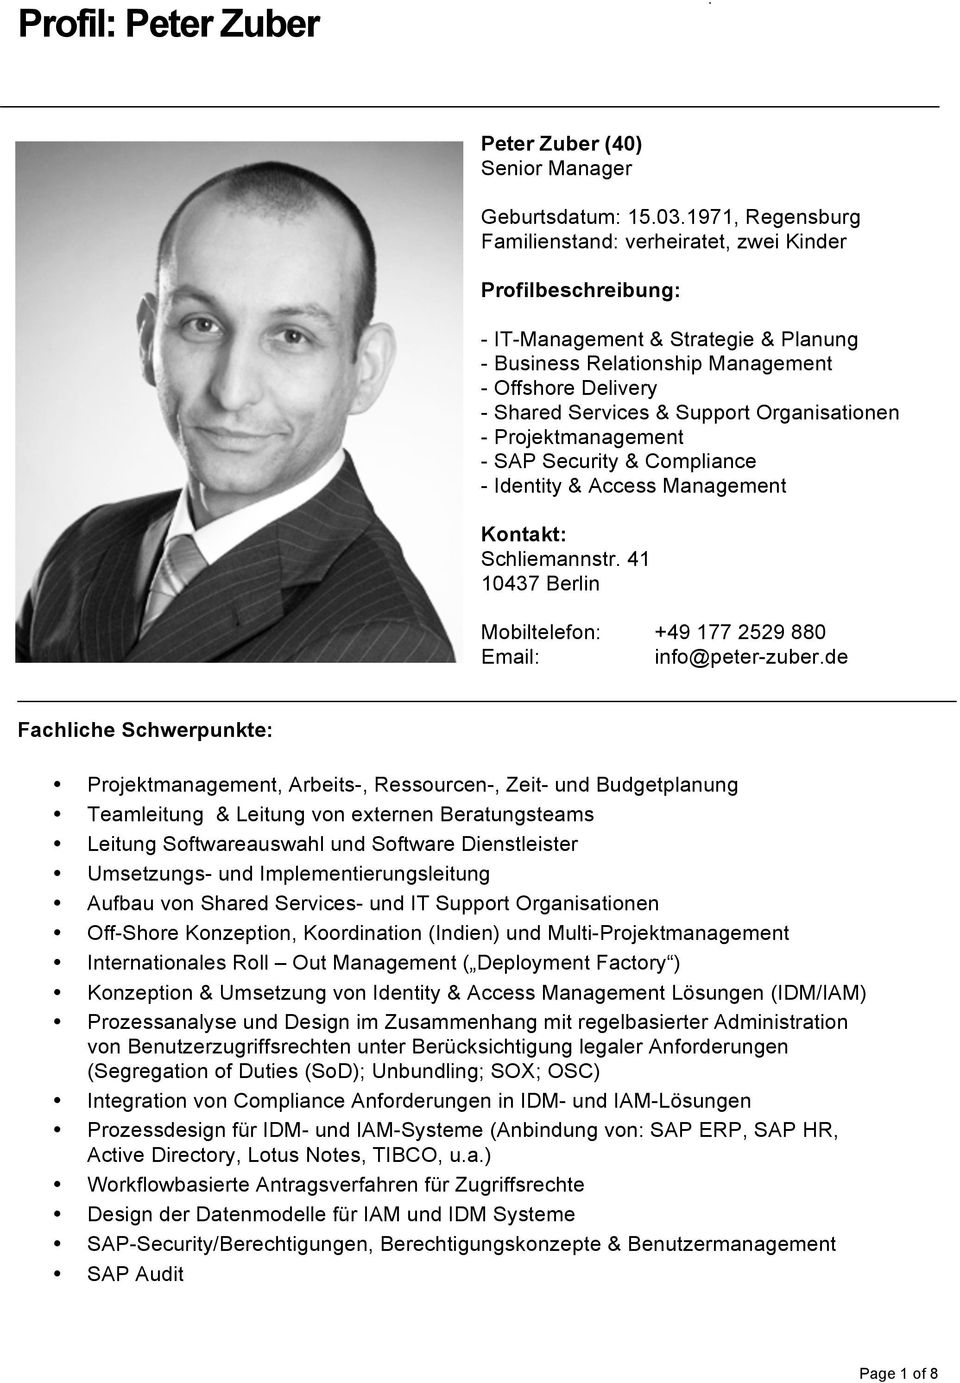 Organisationen - Projektmanagement - SAP Security & Compliance - Identity & Access Management Kontakt: Schliemannstr. 41 10437 Berlin Mobiltelefon: +49 177 2529 880 Email: info@peter-zuber.